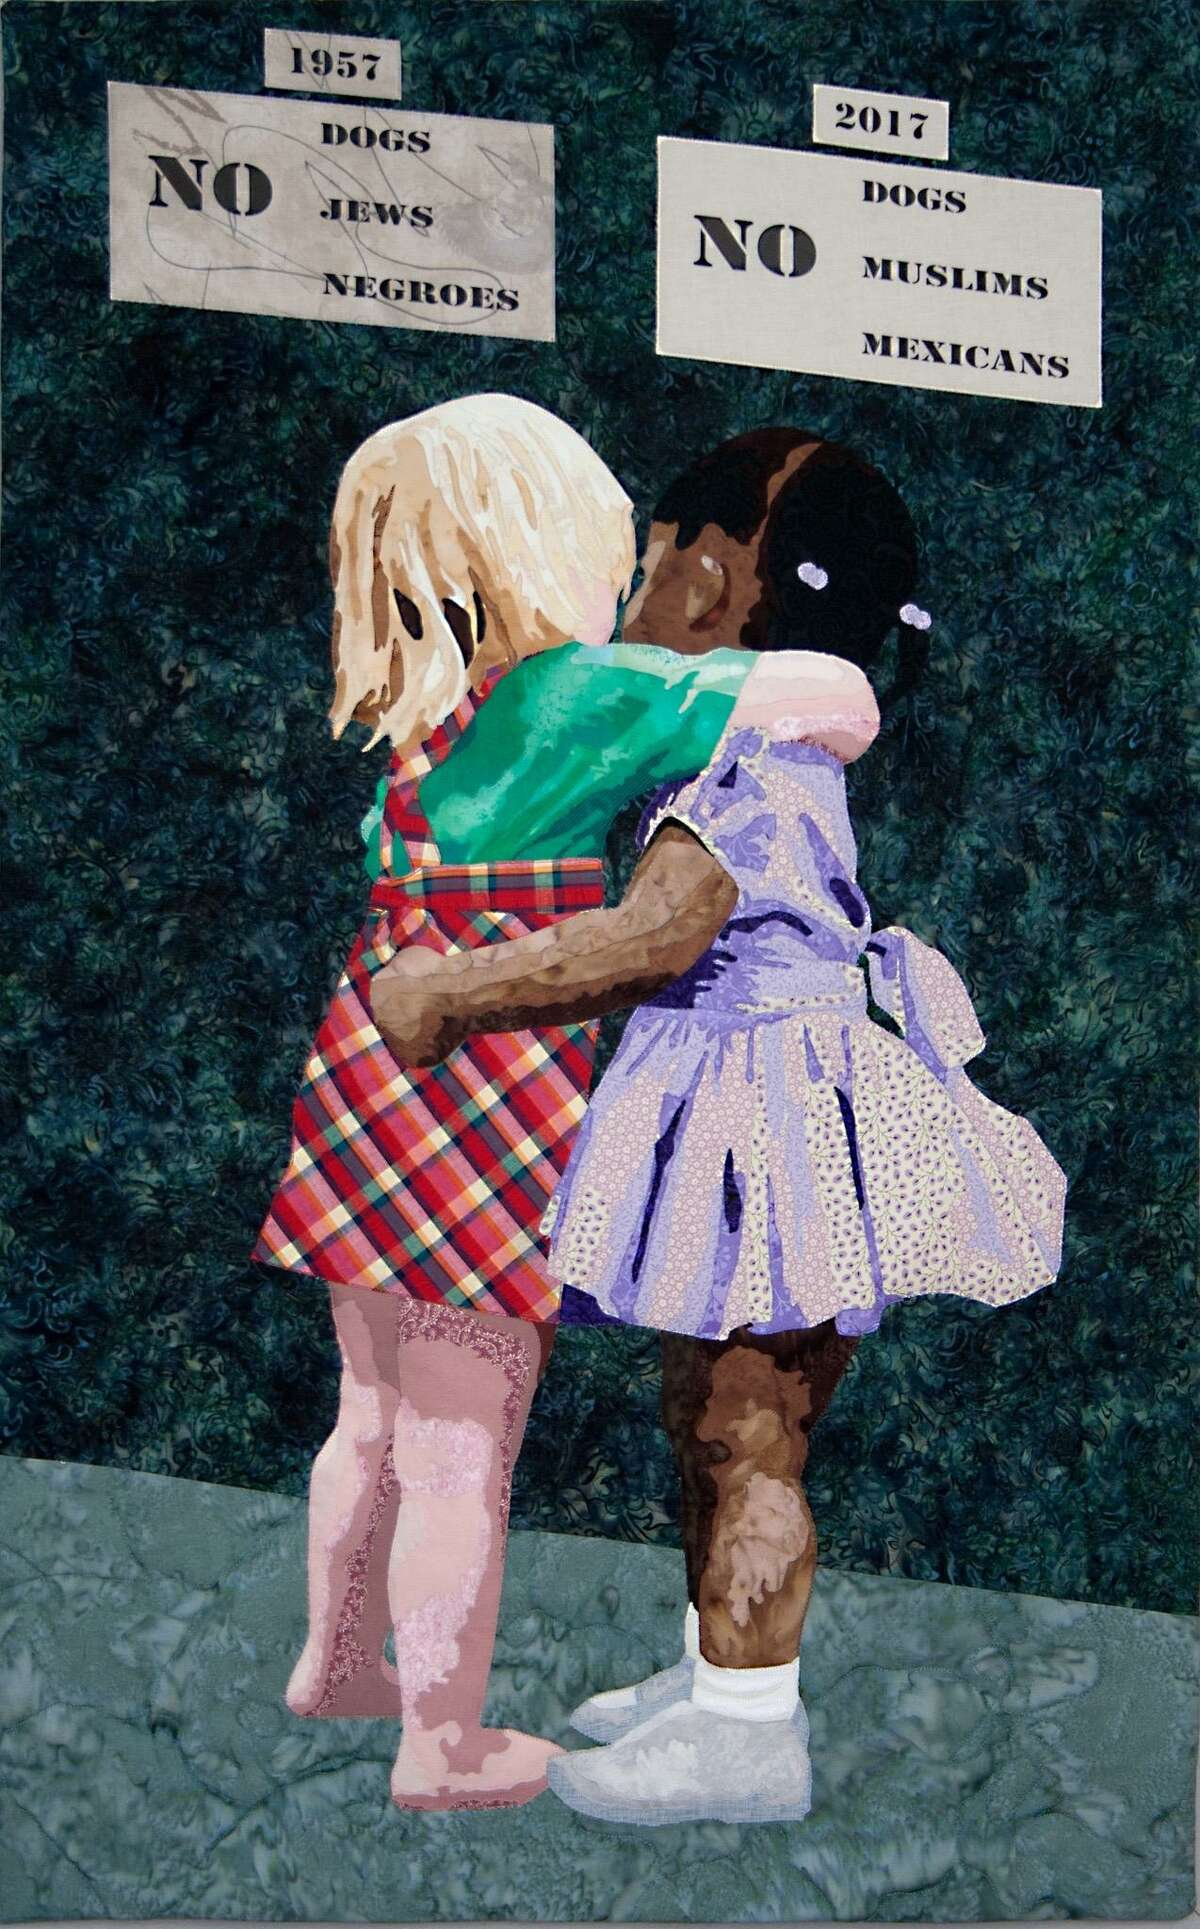 """""""Children don't see color, they see a friend,"""" said Sneyd, who made the Color Blind quilt. """"Prejudice is taught; they learn it from their parents or their environment. Children, at birth, are color blind."""""""